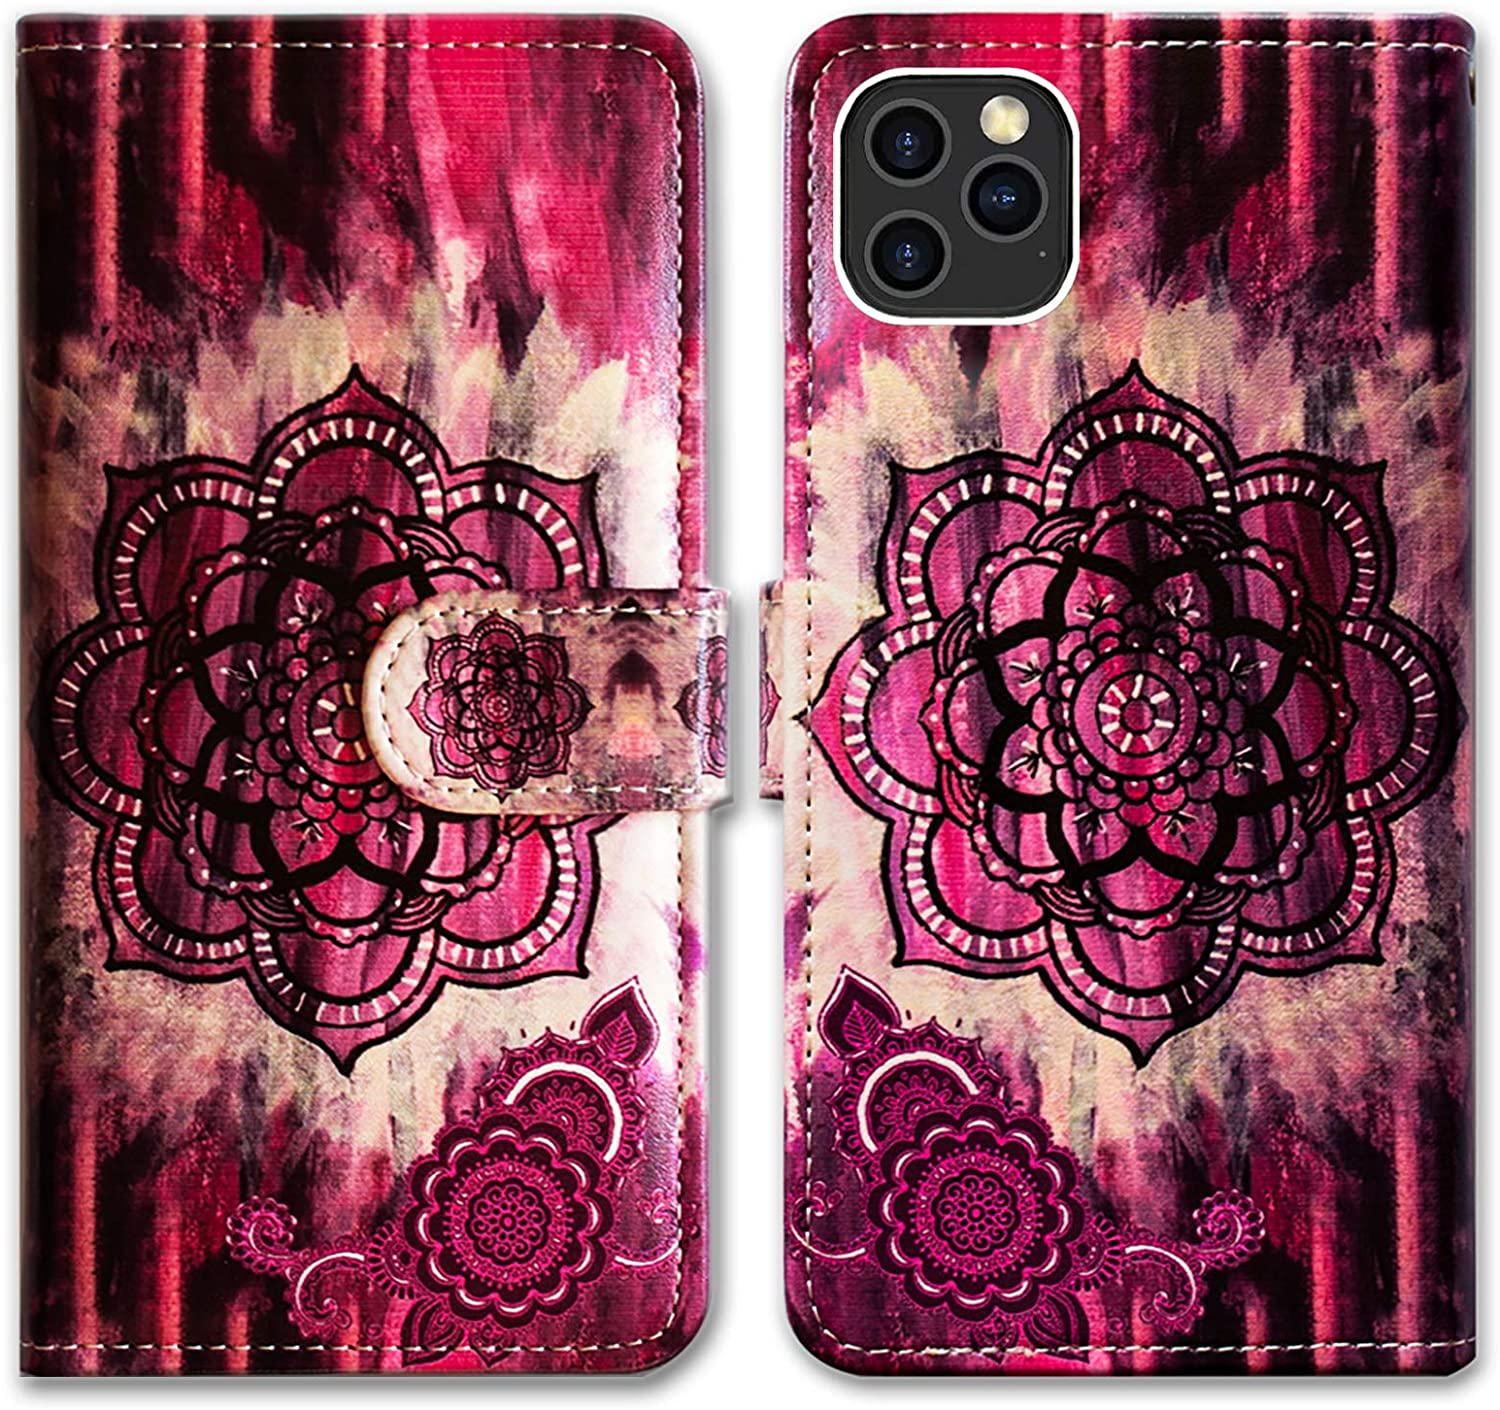 iPhone 12 Pro Max Case,Bcov Retro Pink Mandala Leather Flip Phone Case Wallet Cover with Card Slot Holder Kickstand for iPhone 12 Pro Max